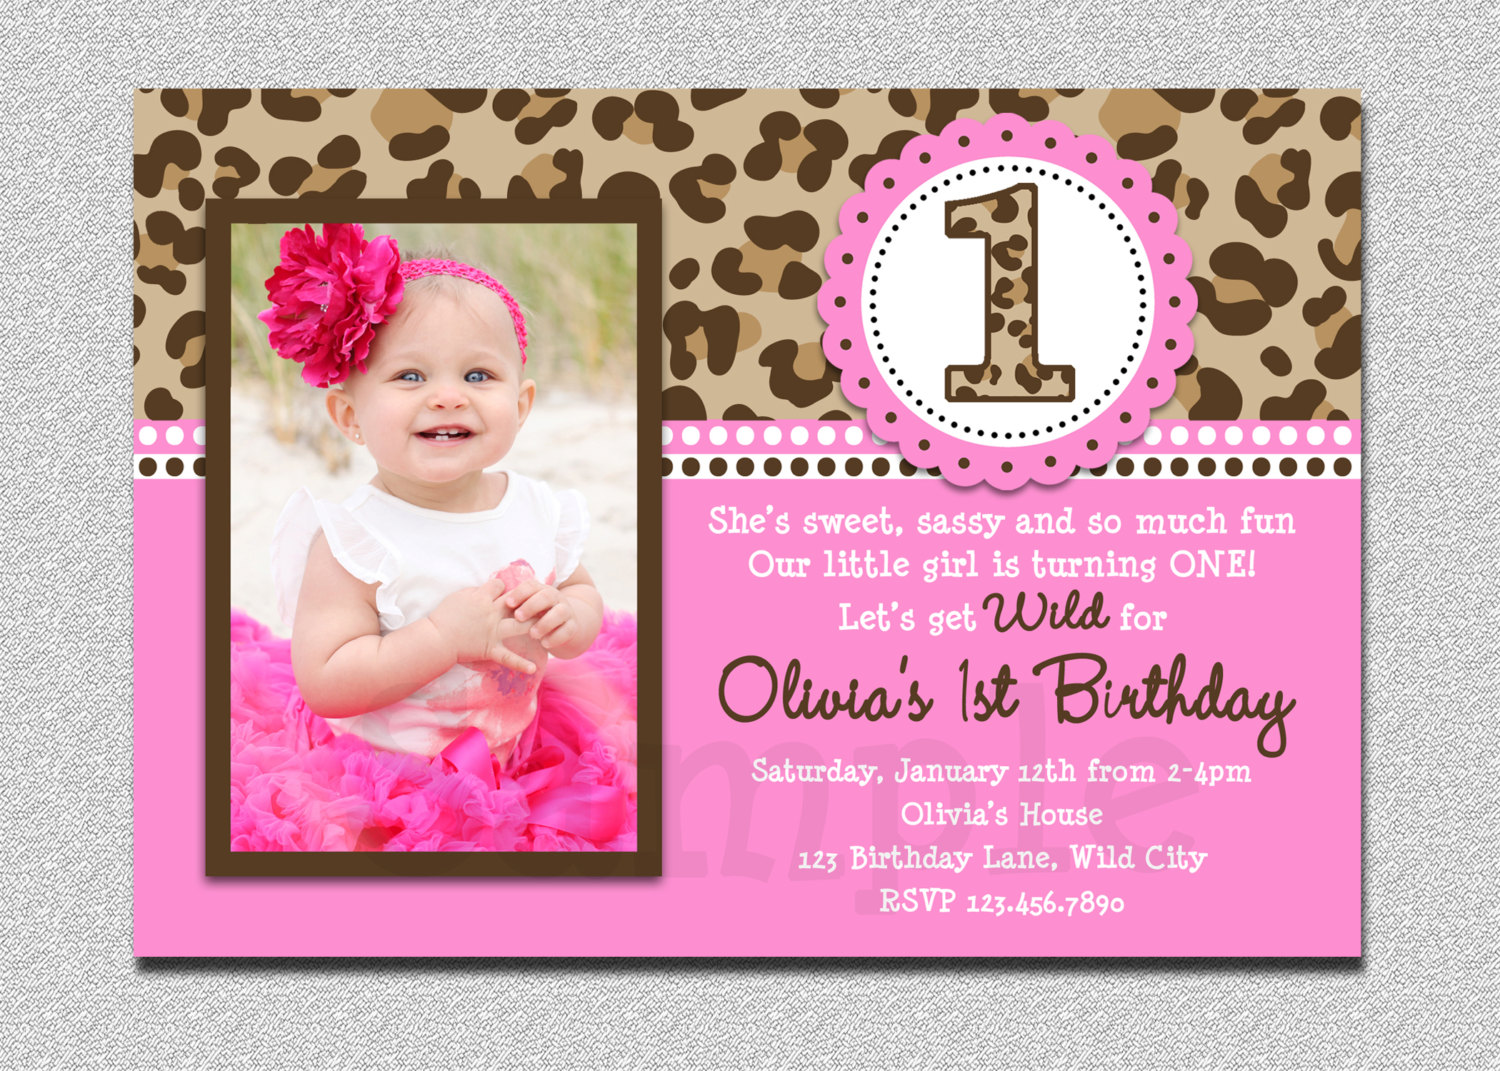 cupcake themed birthday party invitation wording ; 1st-birthday-party-invitations-vfirst-birthday-invitations-cupcake-girl-polka-dot-digital-party-leopard-design-cards-printable